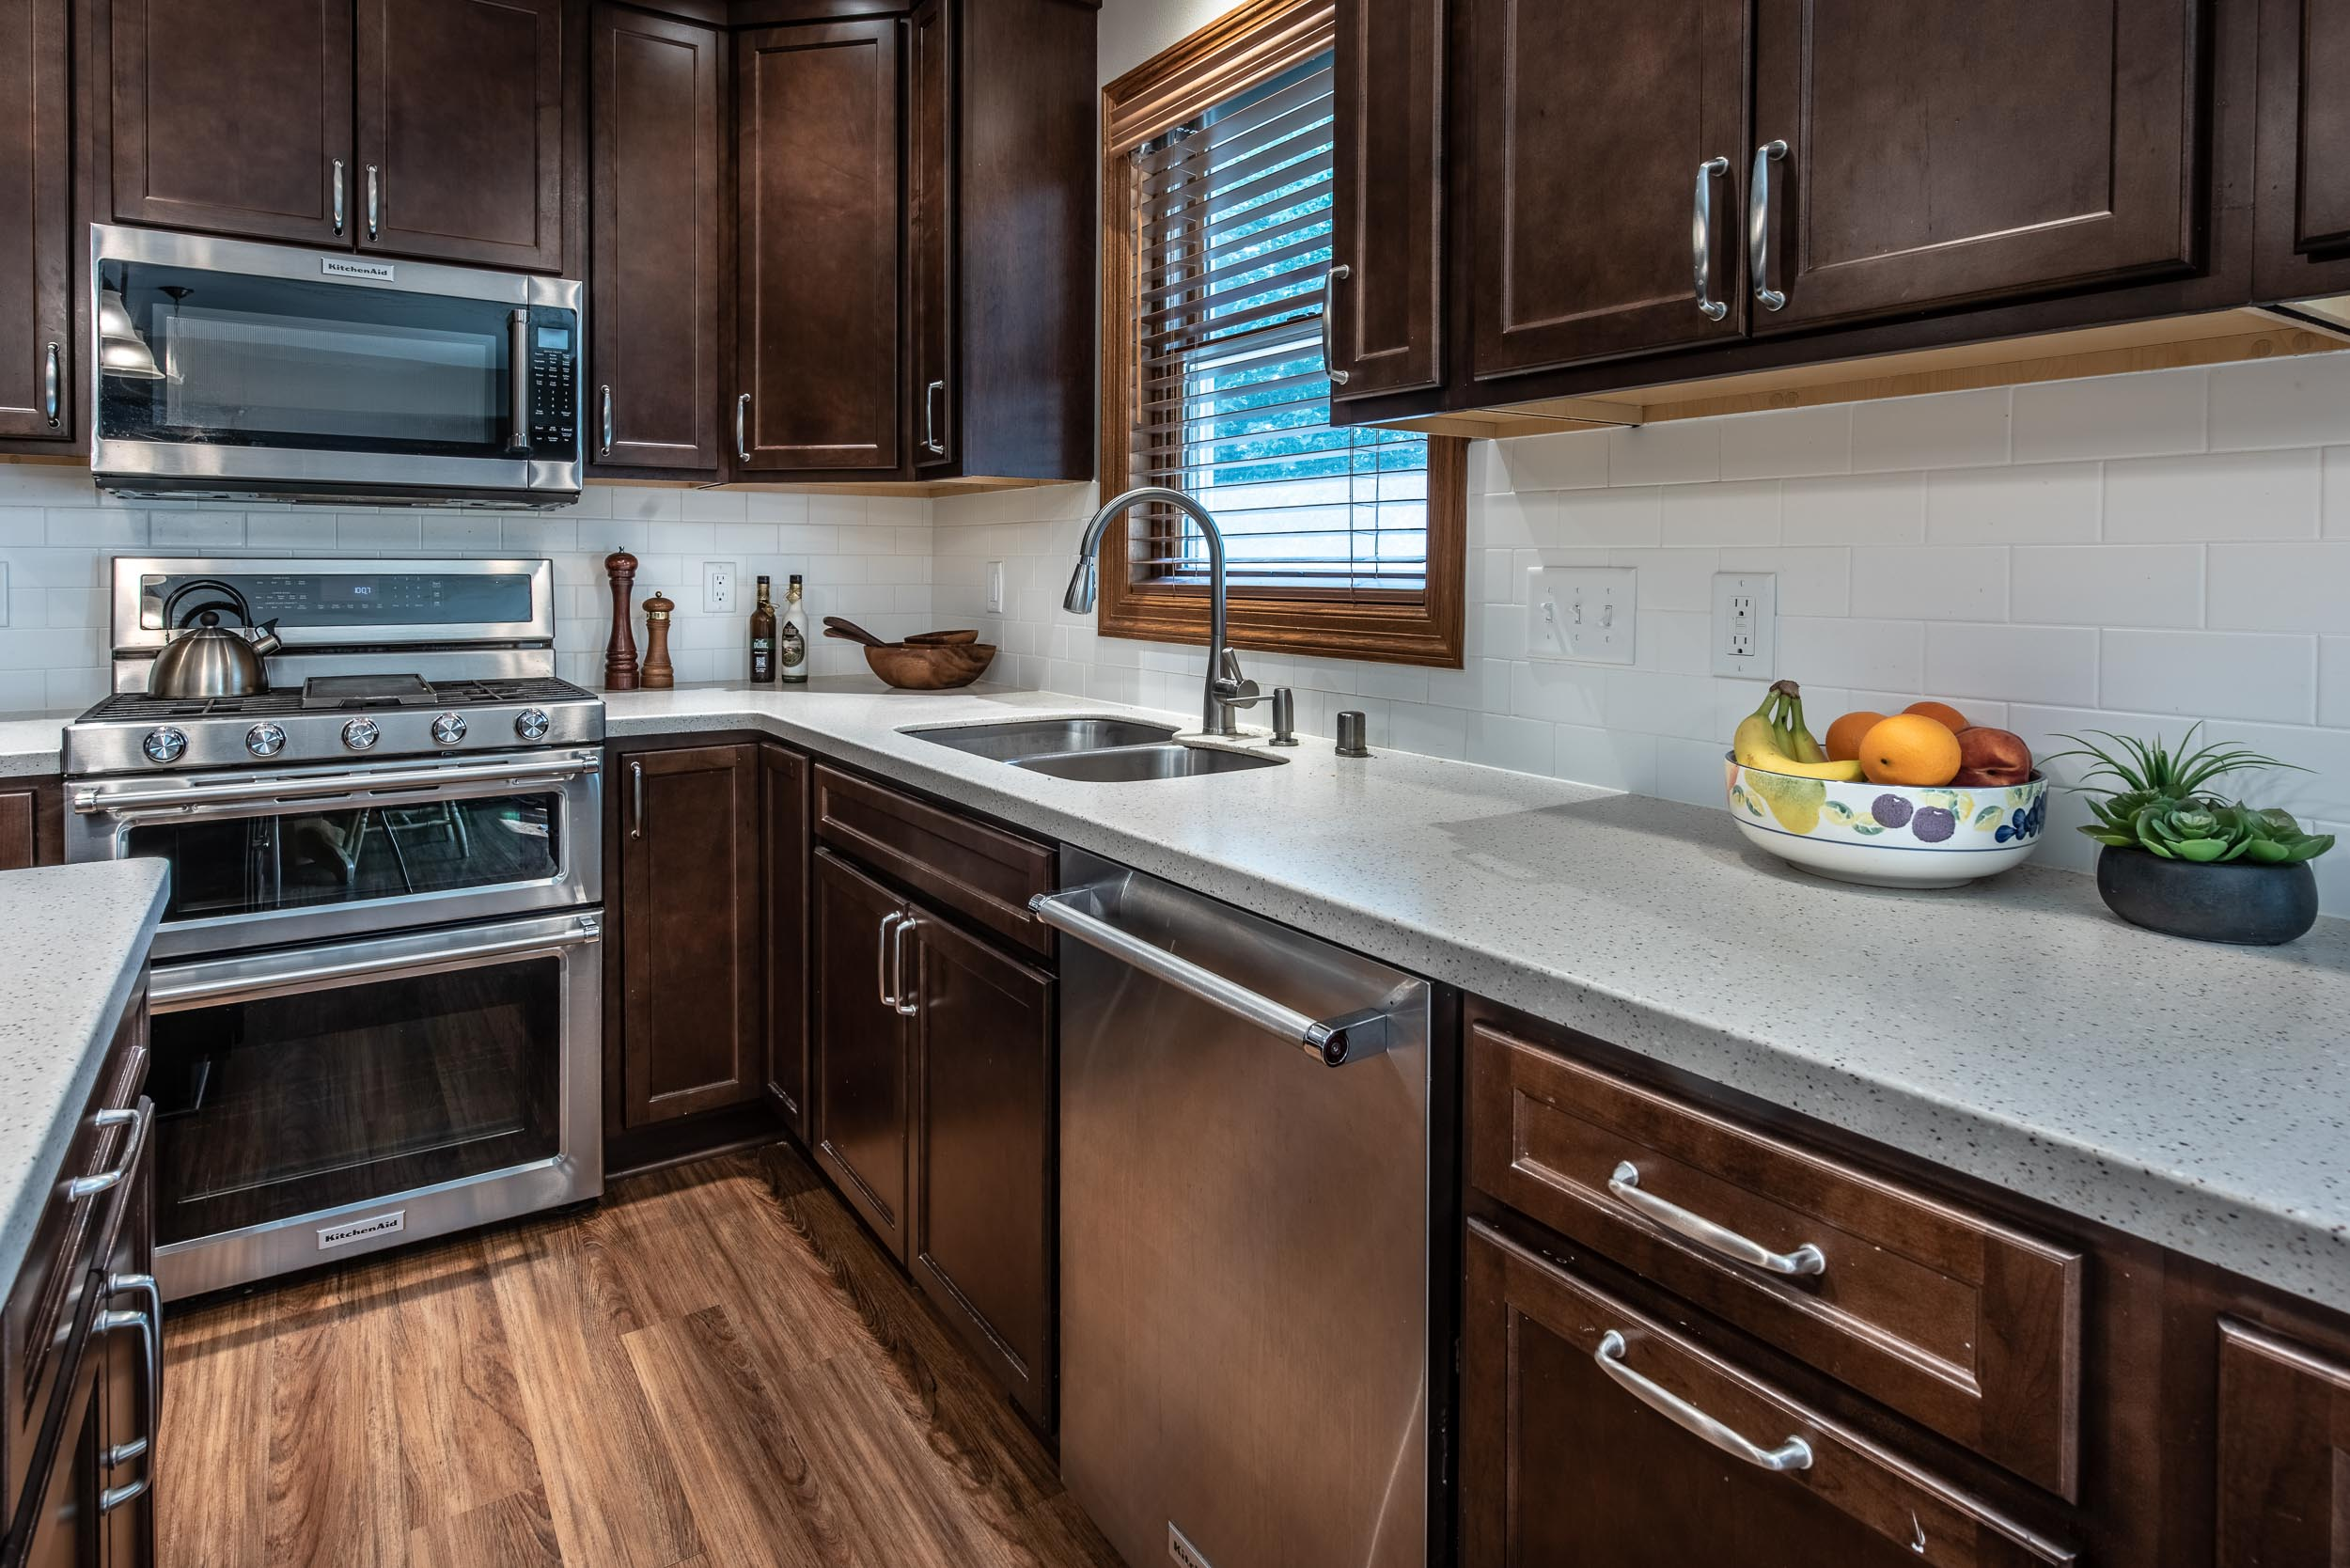 The Countertop is LG Hi-Macs Solid Surface in Macchiato. The Subway Tile Backsplash Is Streamline 3x6 matte tile in Arctic color with Bright White grout.